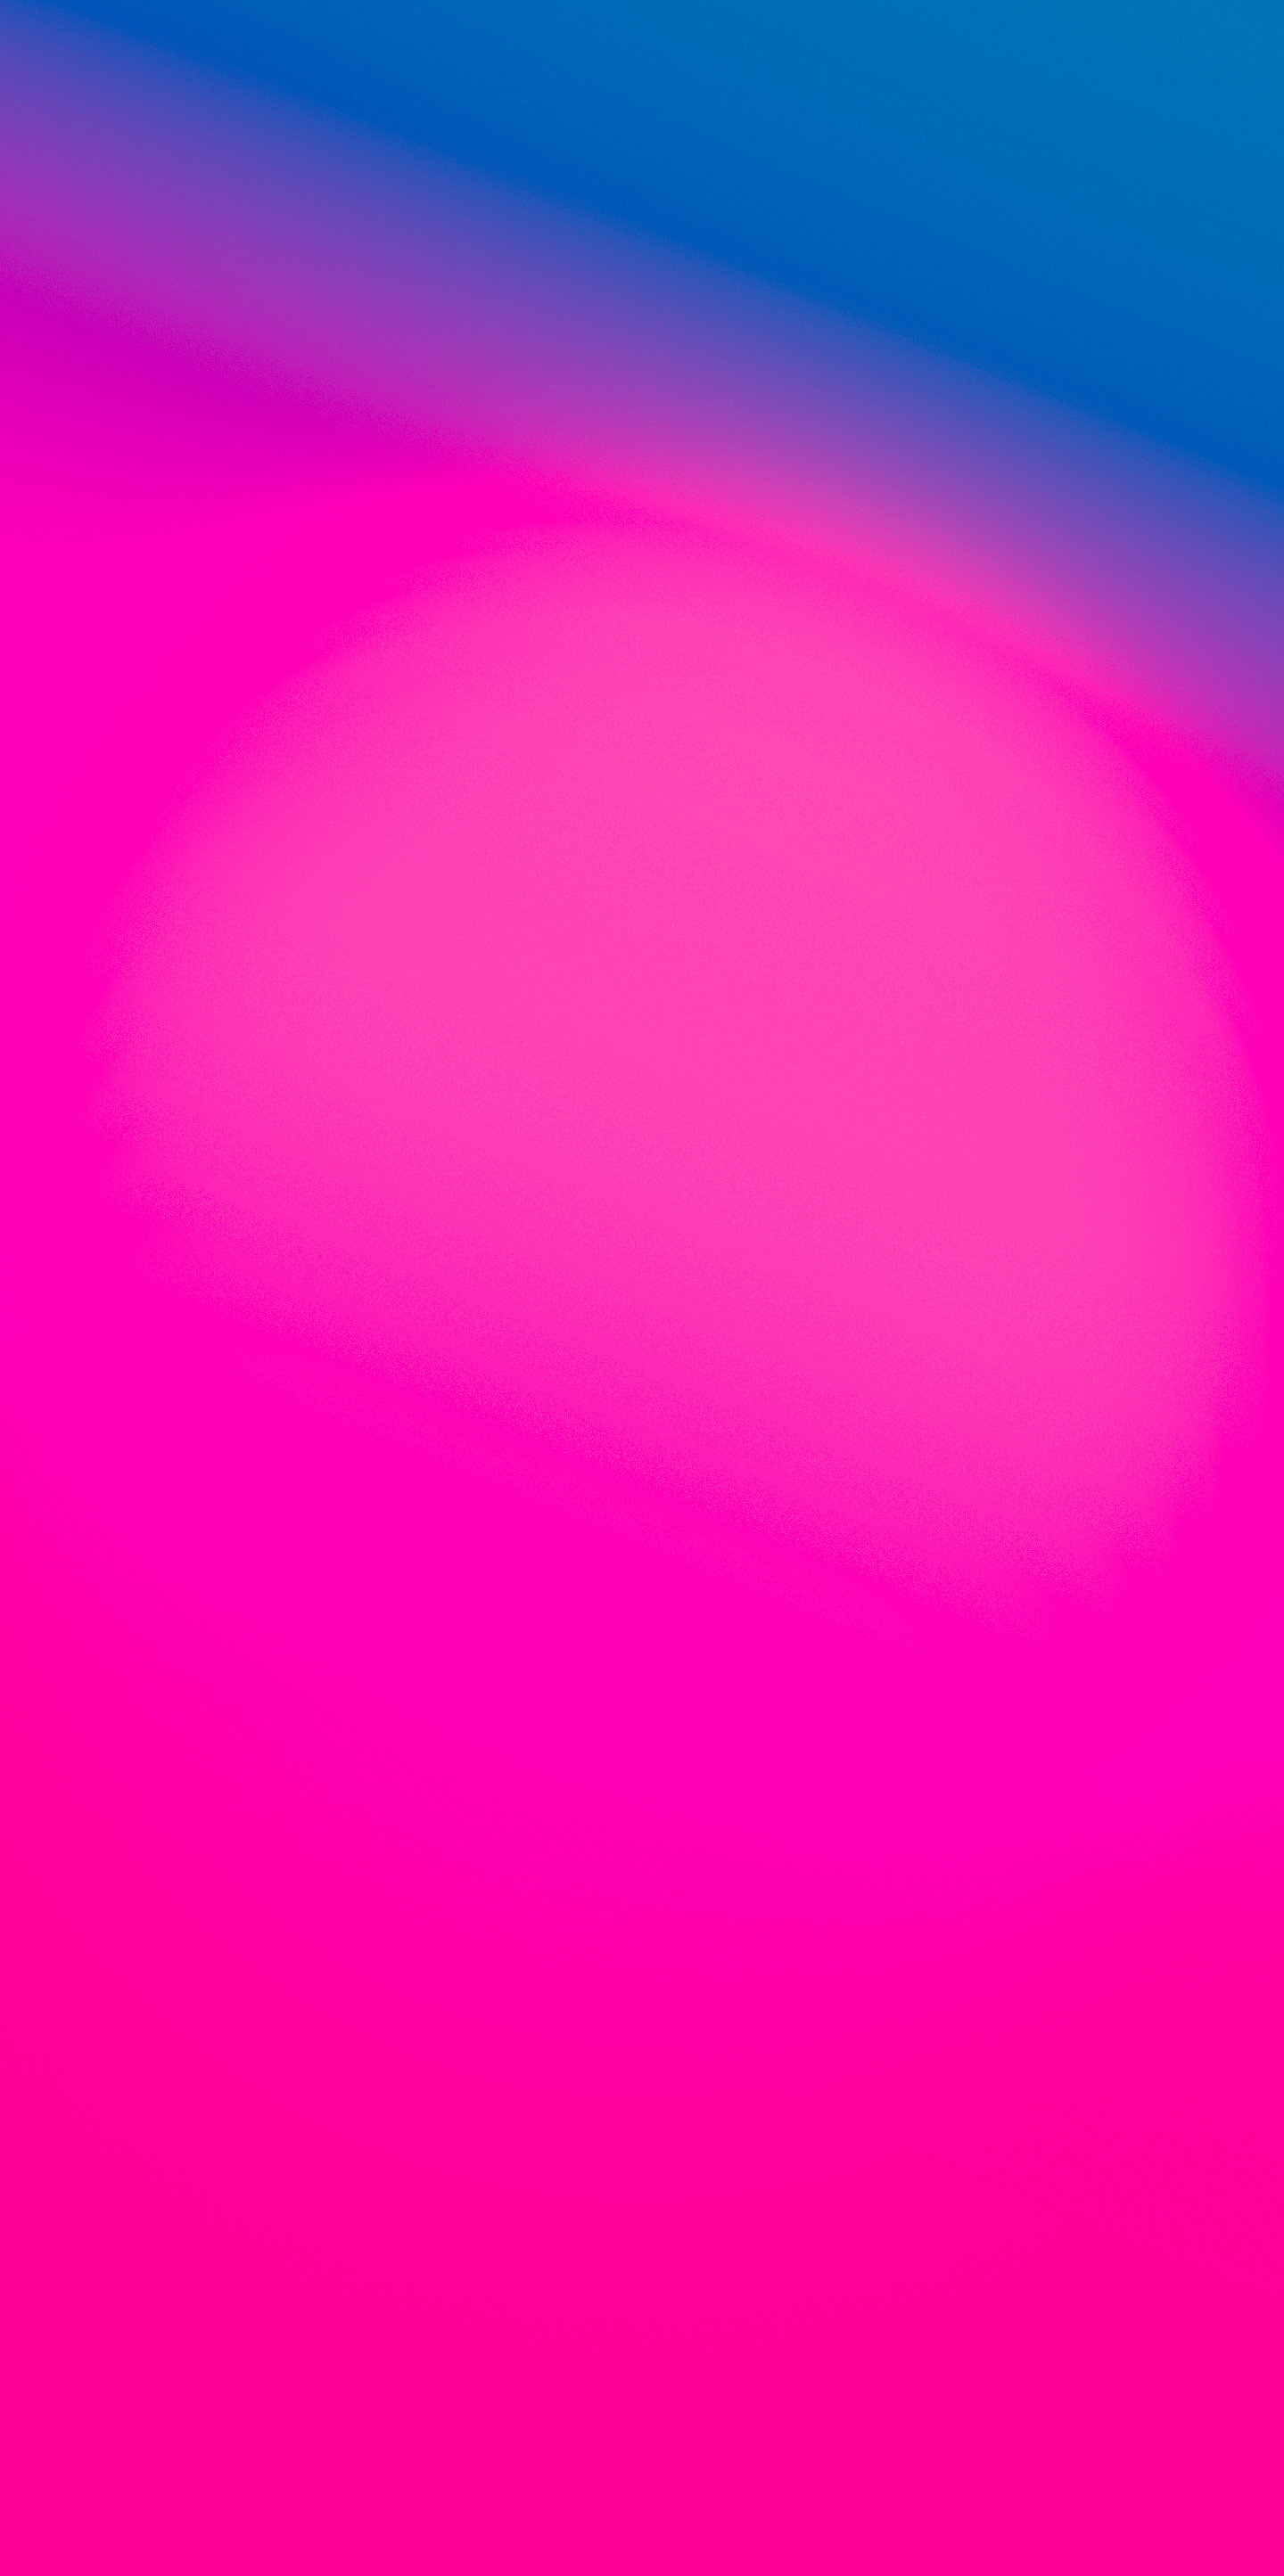 gradient wallpaper pink blue